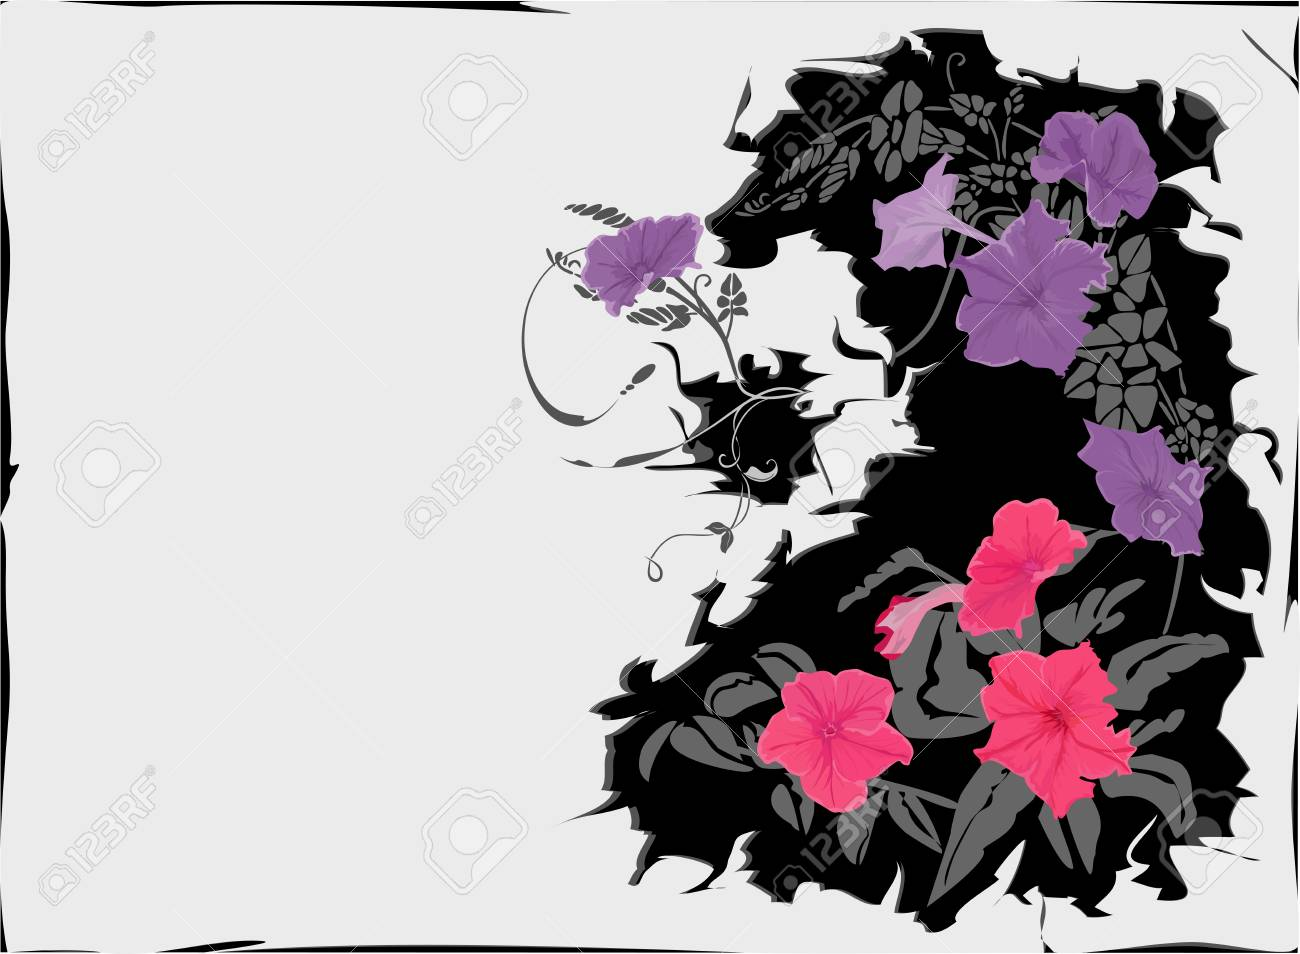 Crackle background with purple and violet flowers. Stock Vector - 3215033